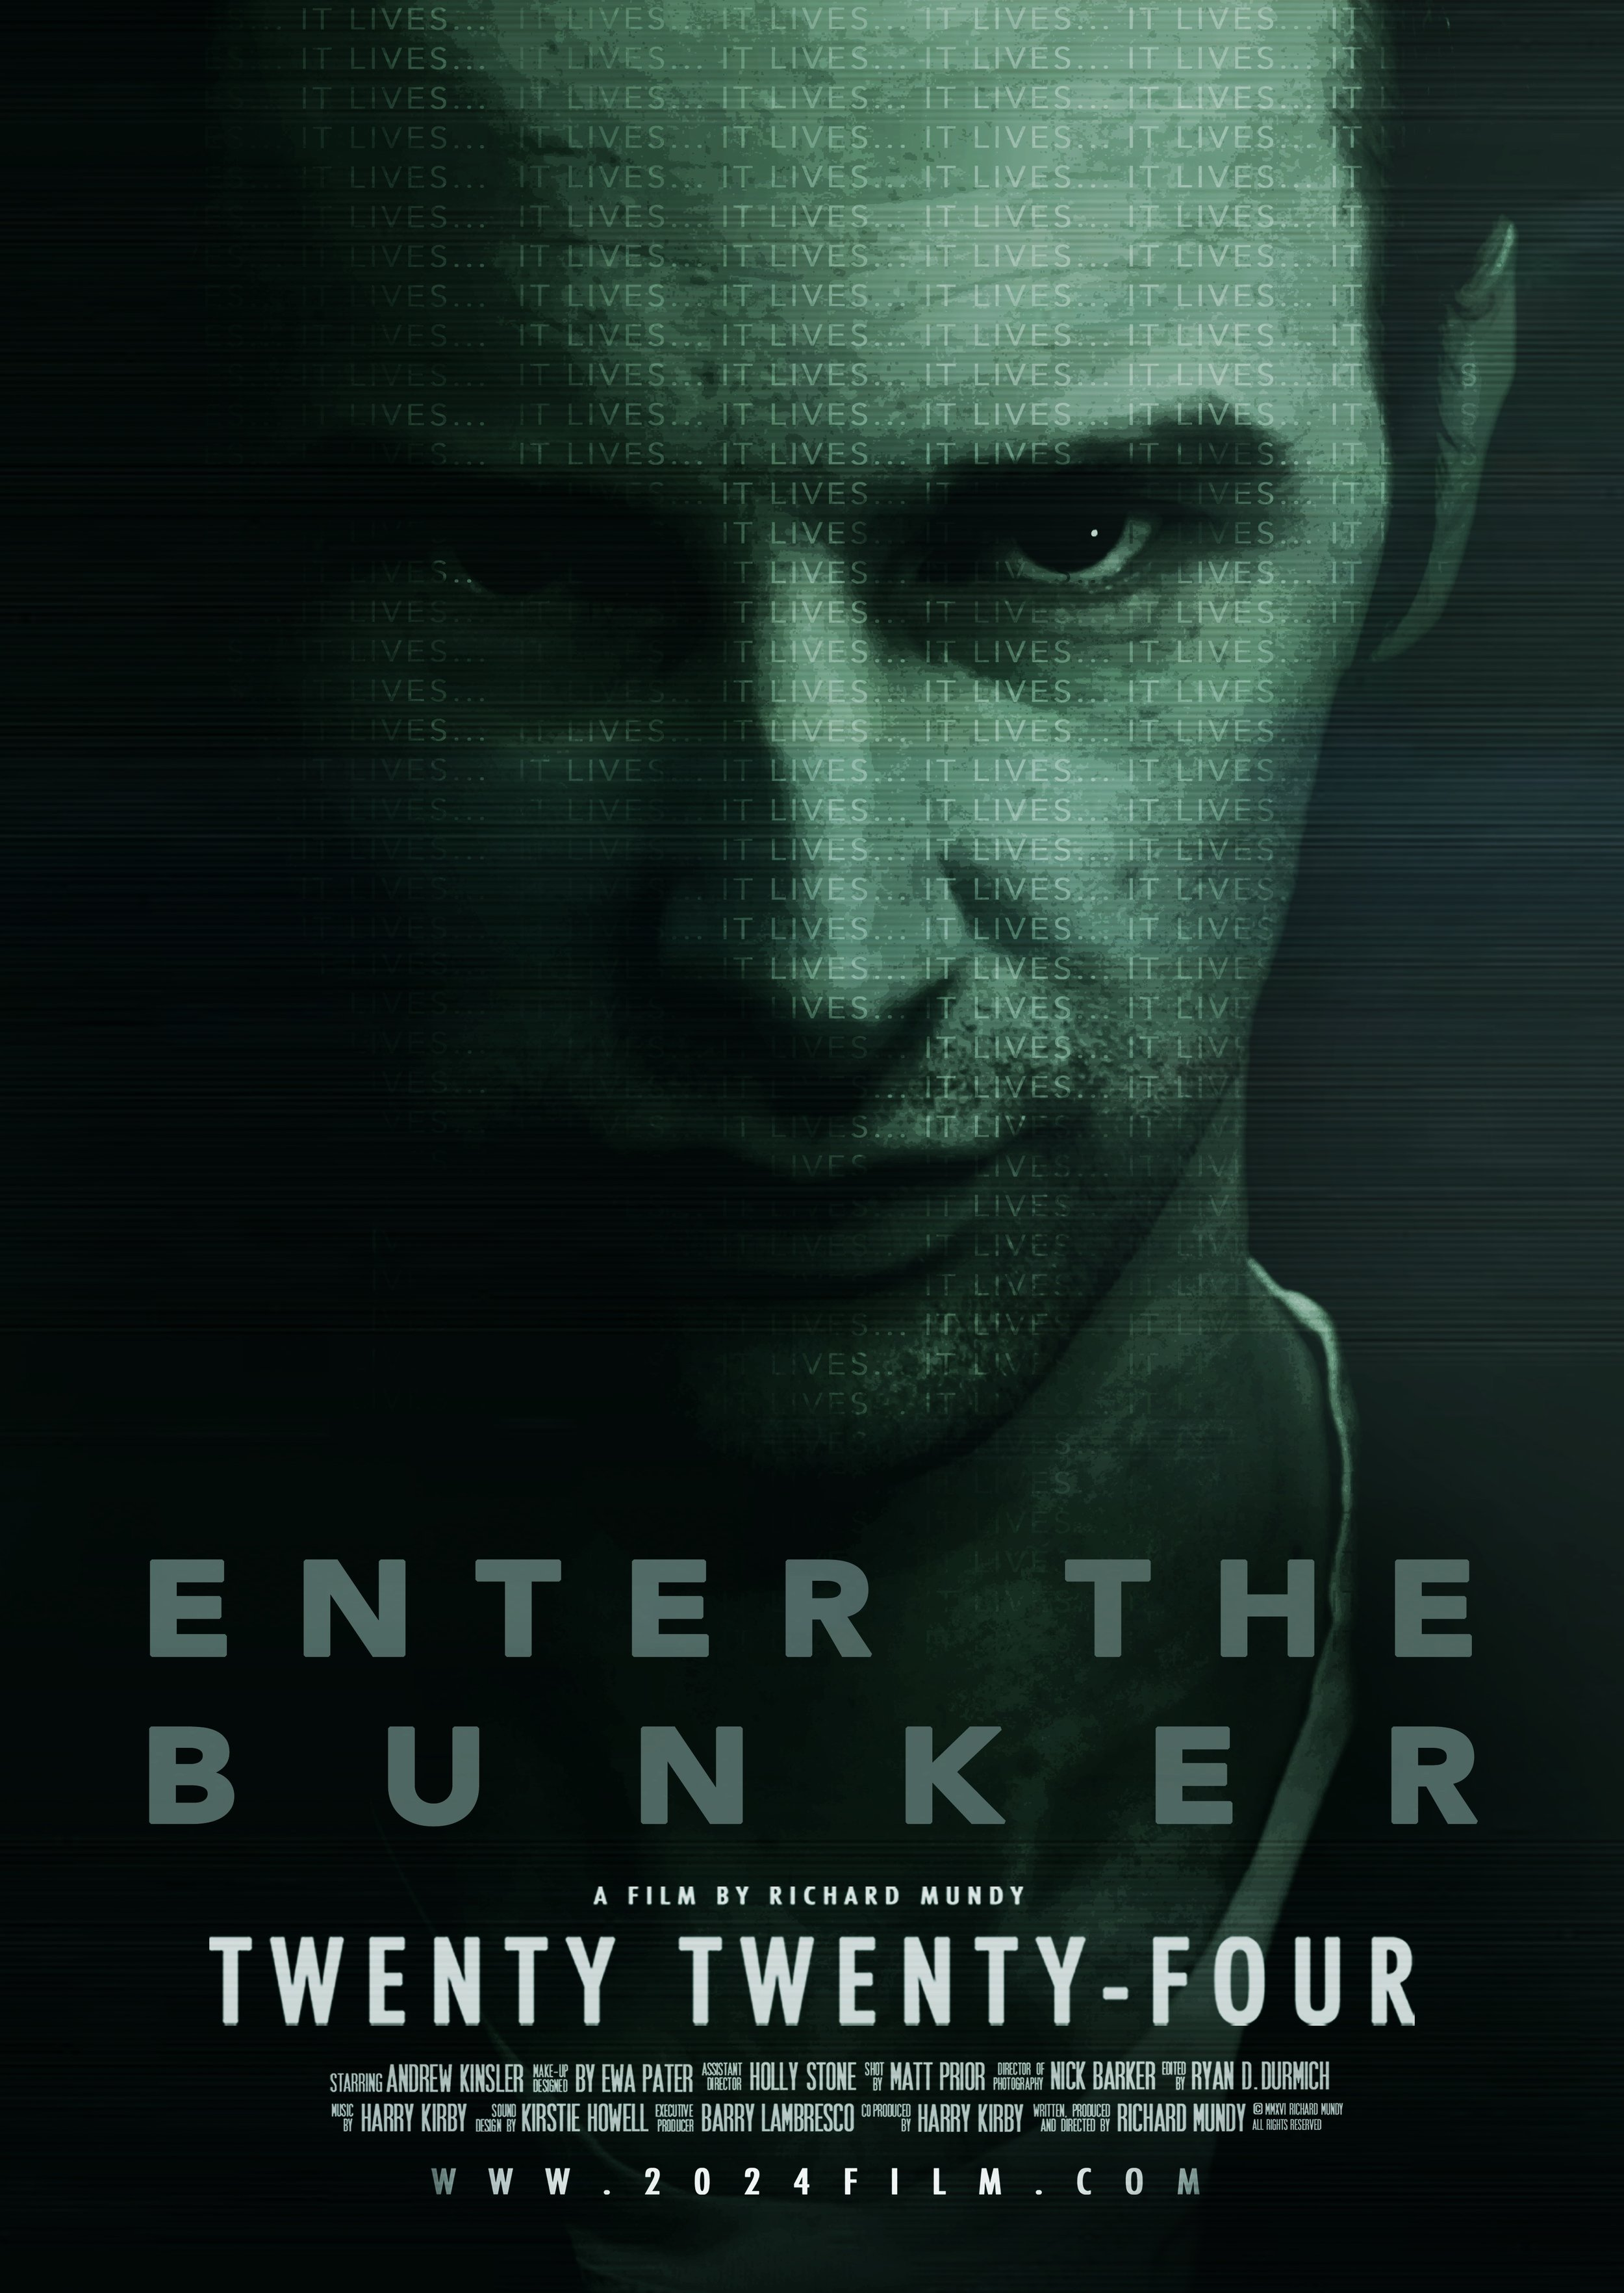 Are you ready to enter the bunker?